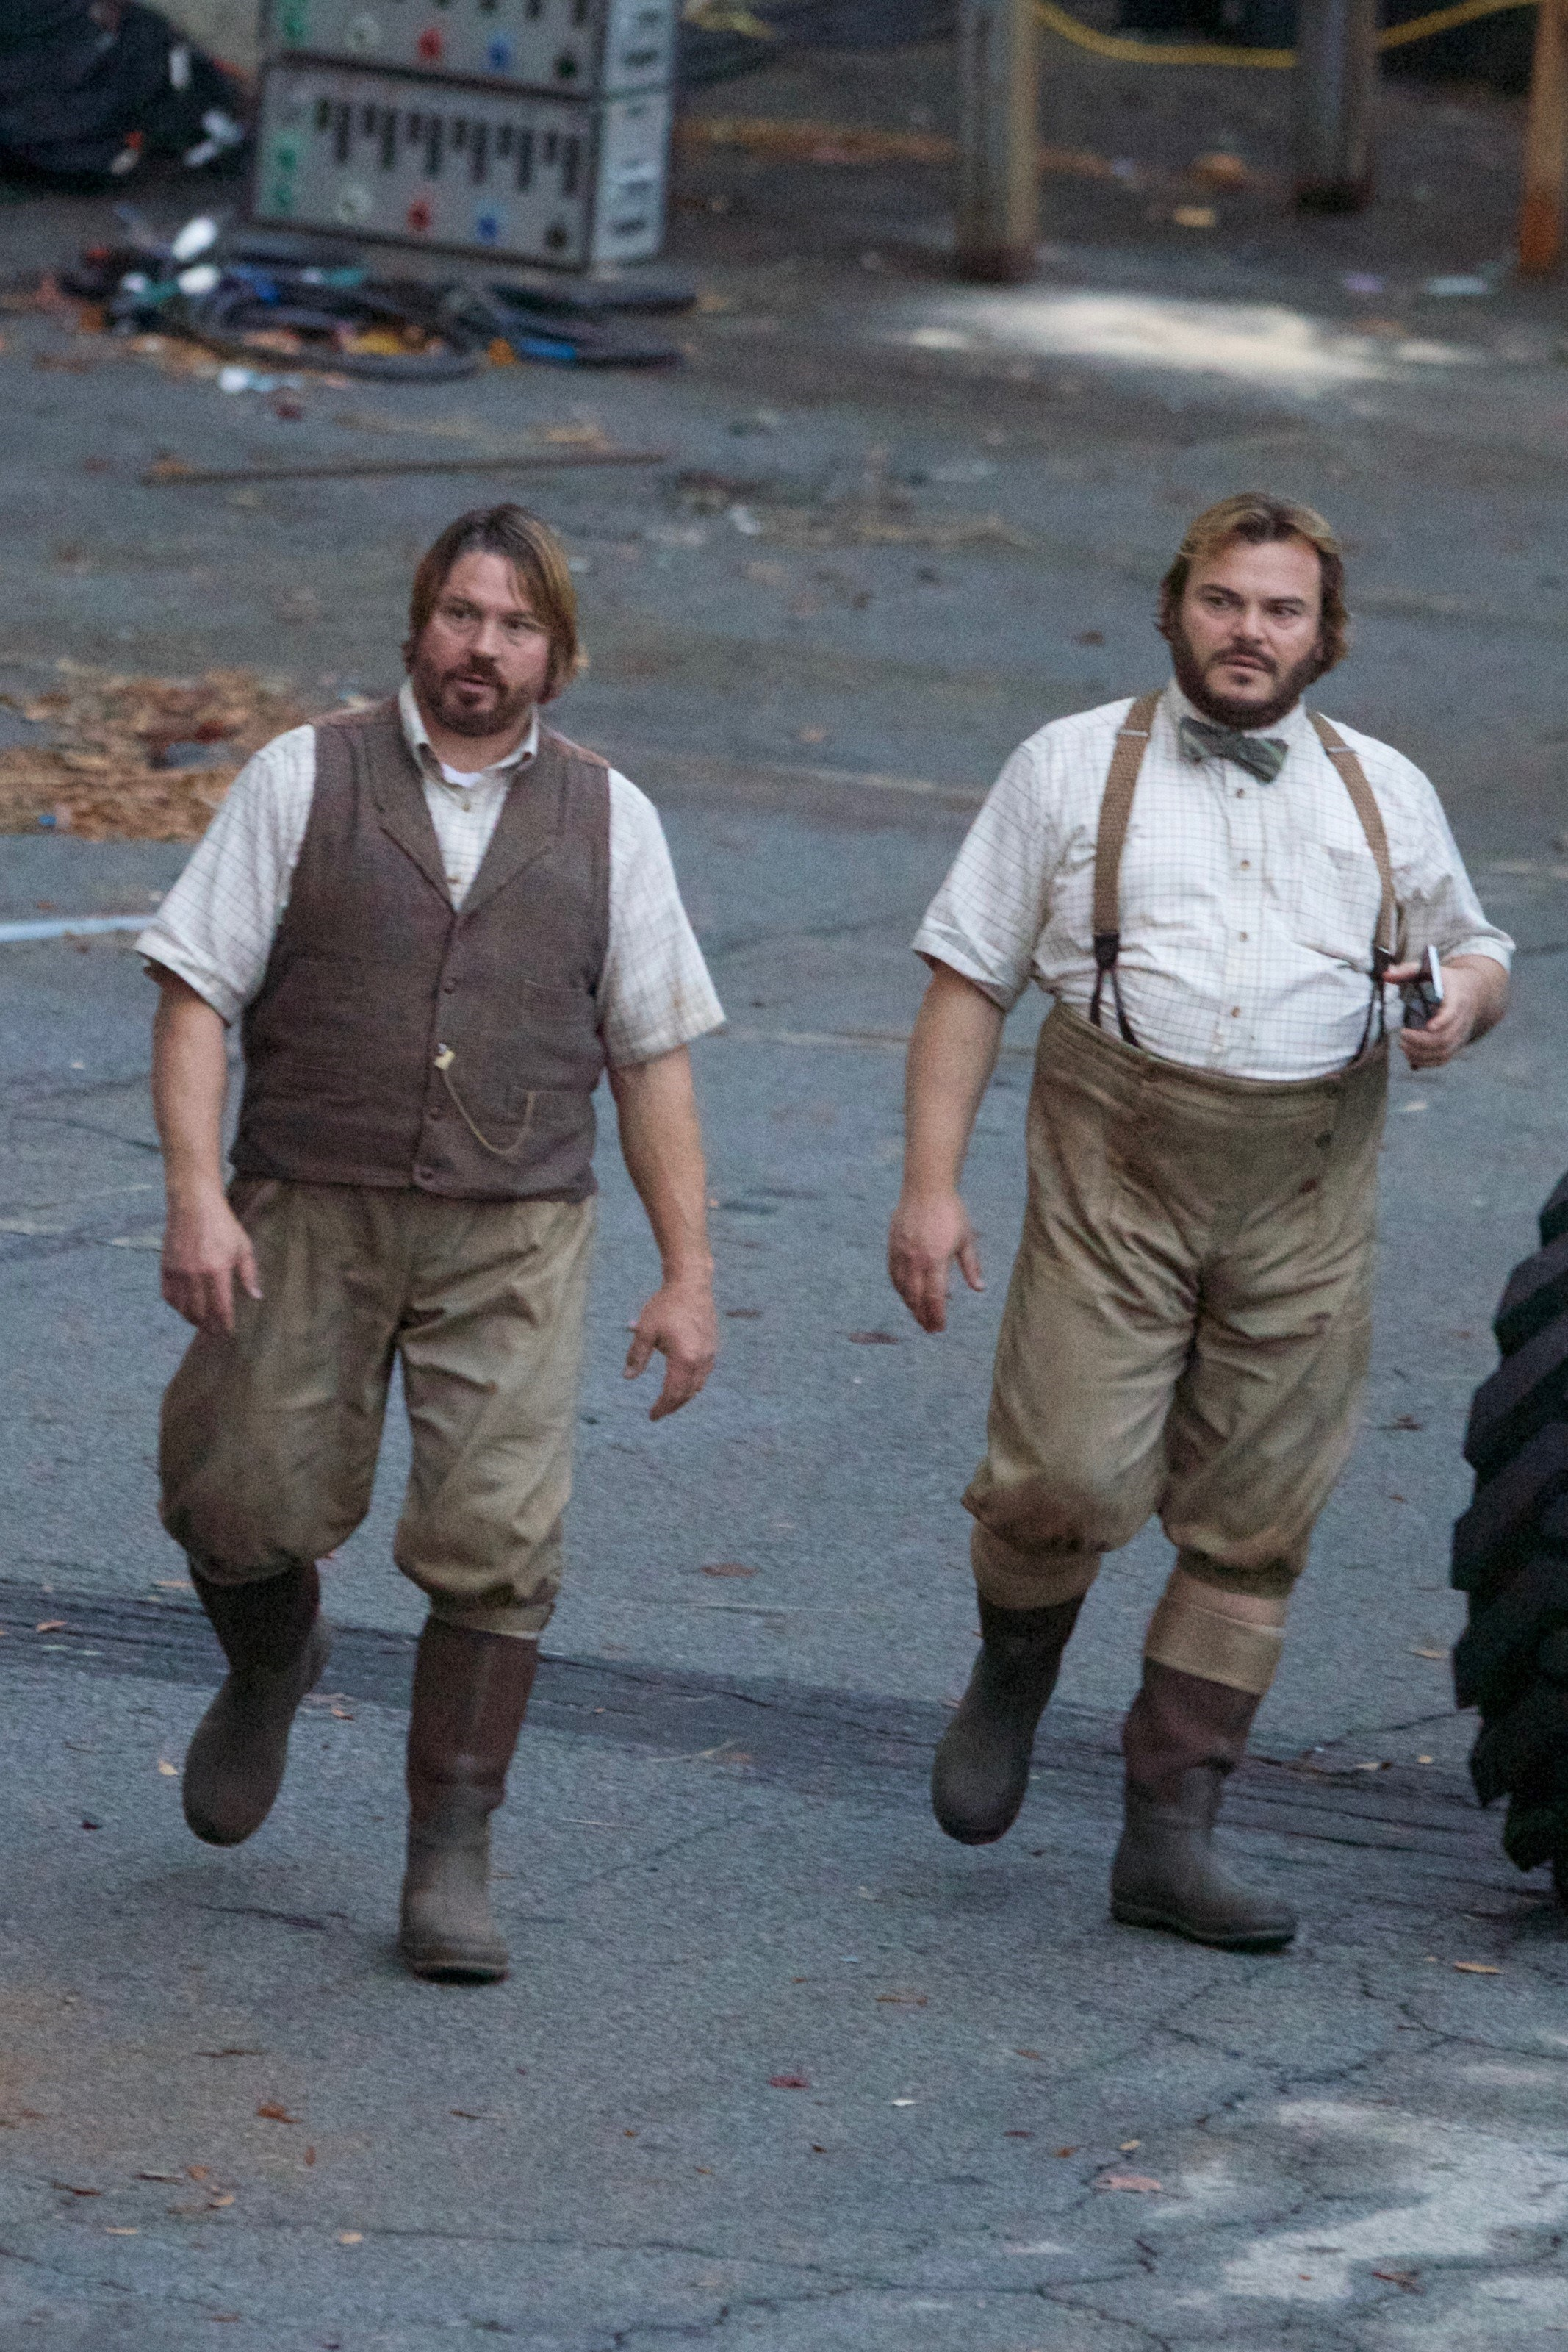 Jack Black and hus stunt double walking while filming